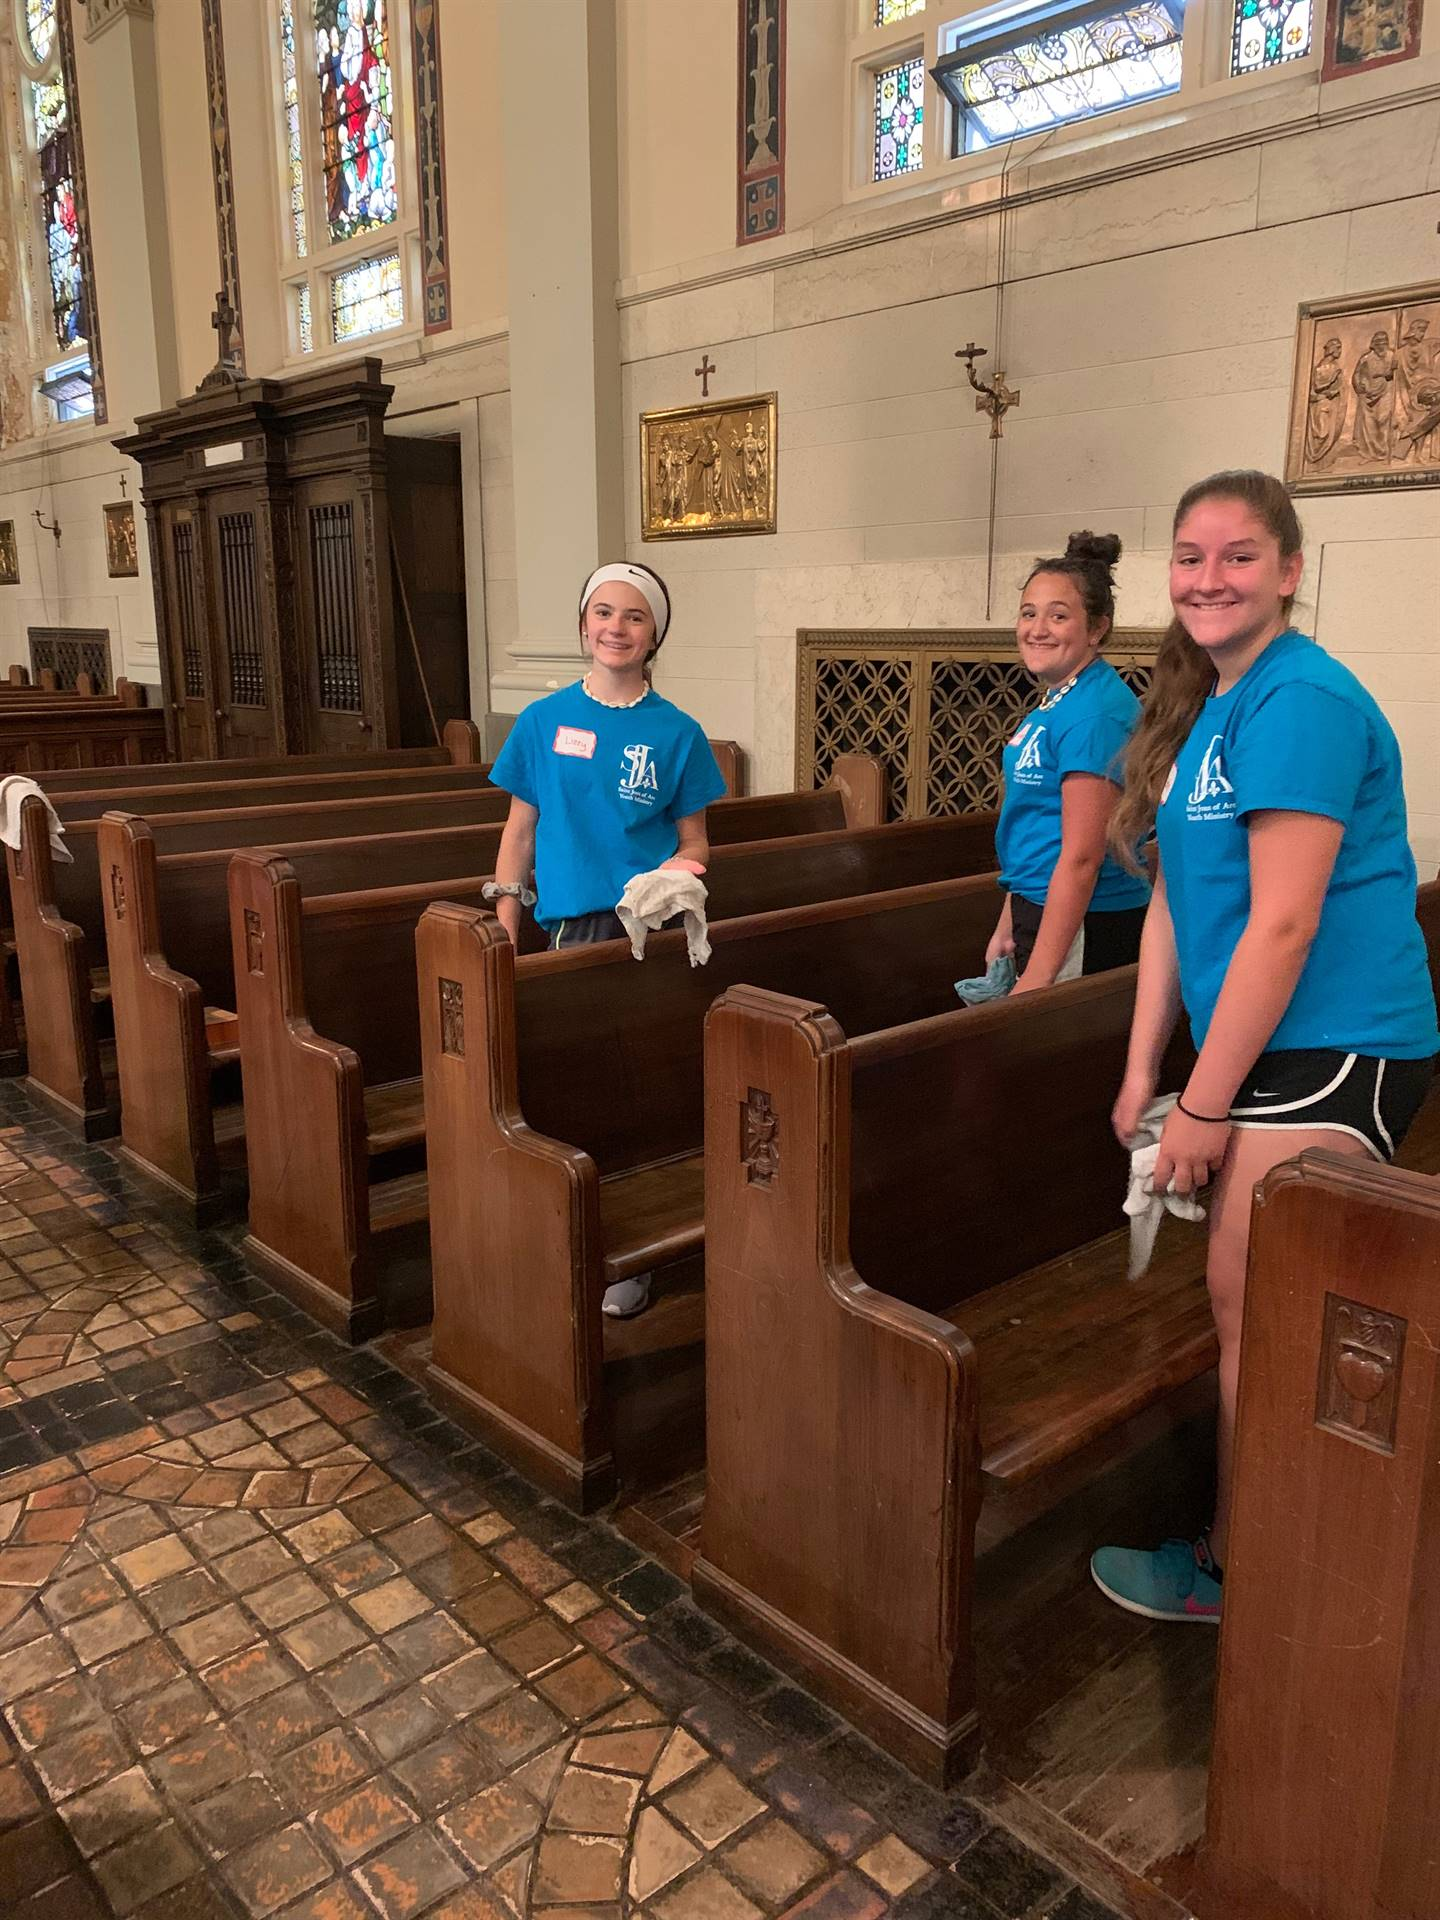 Kids Cleaning Pews